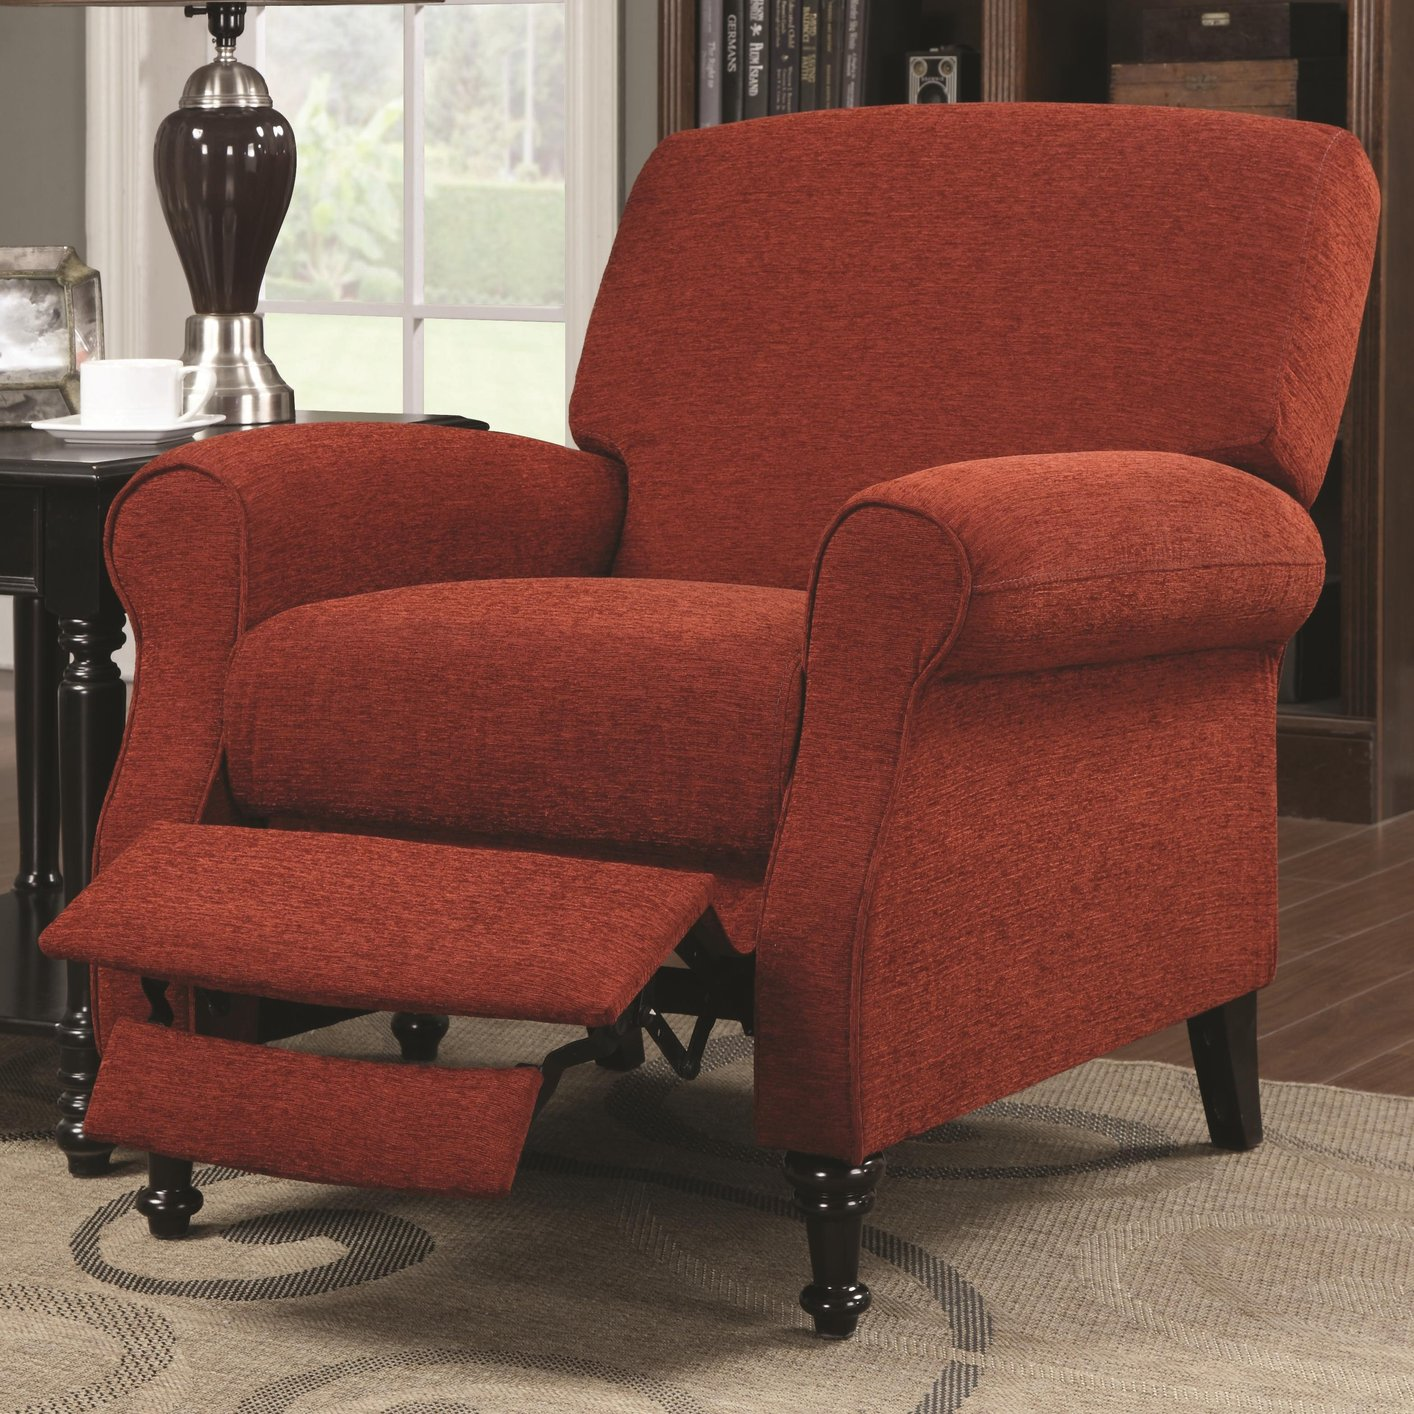 Red Fabric Reclining Chair  StealASofa Furniture Outlet